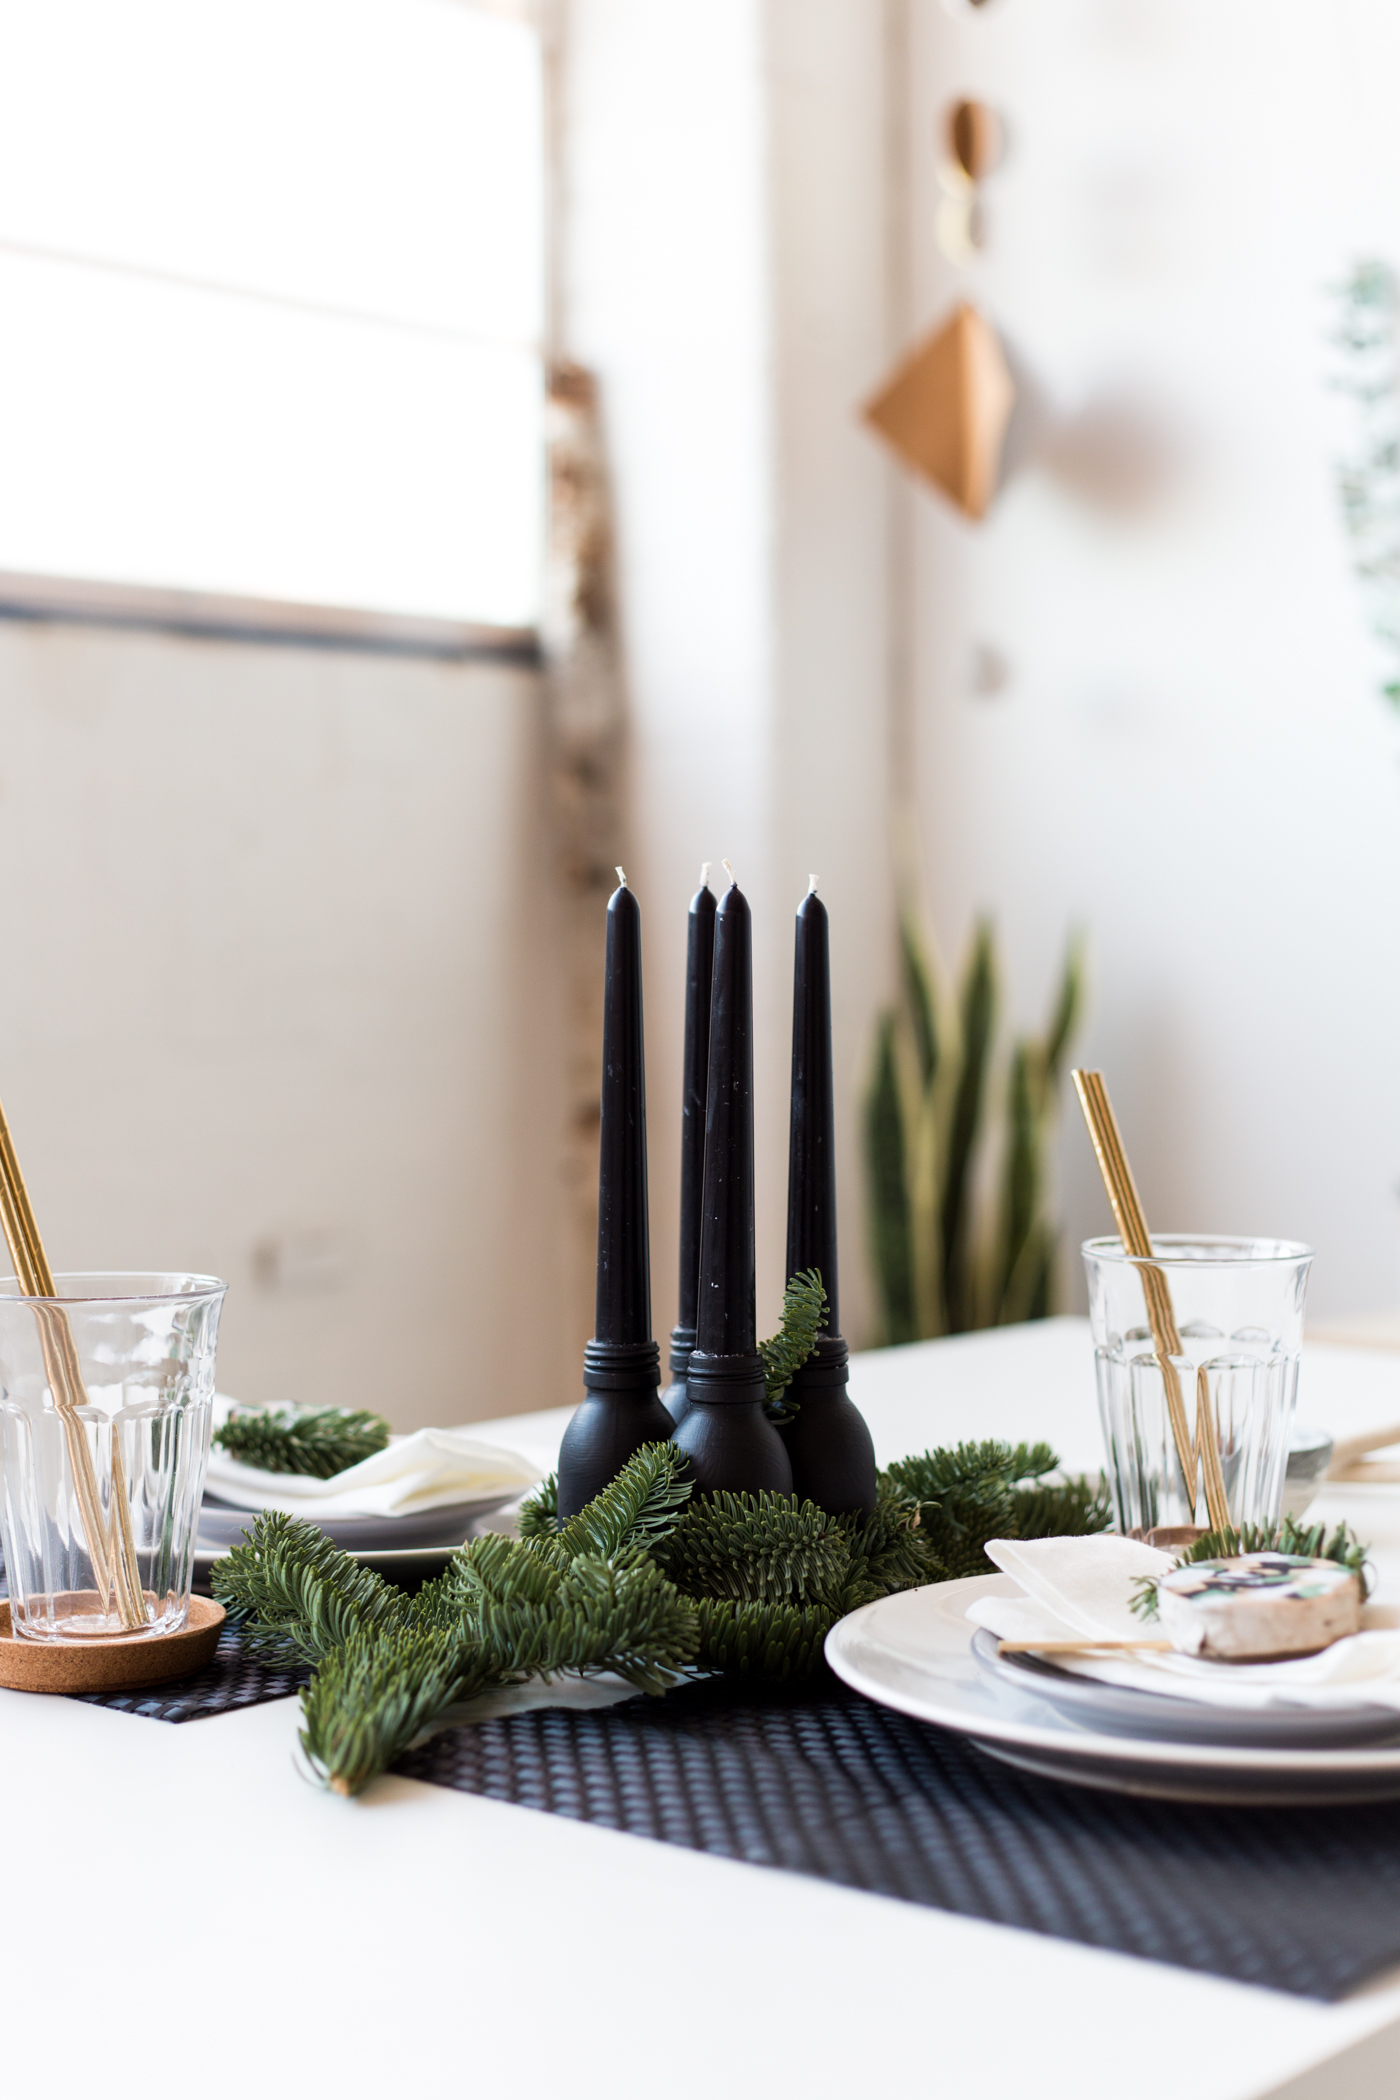 Painted Bottle Candle Centrepiece